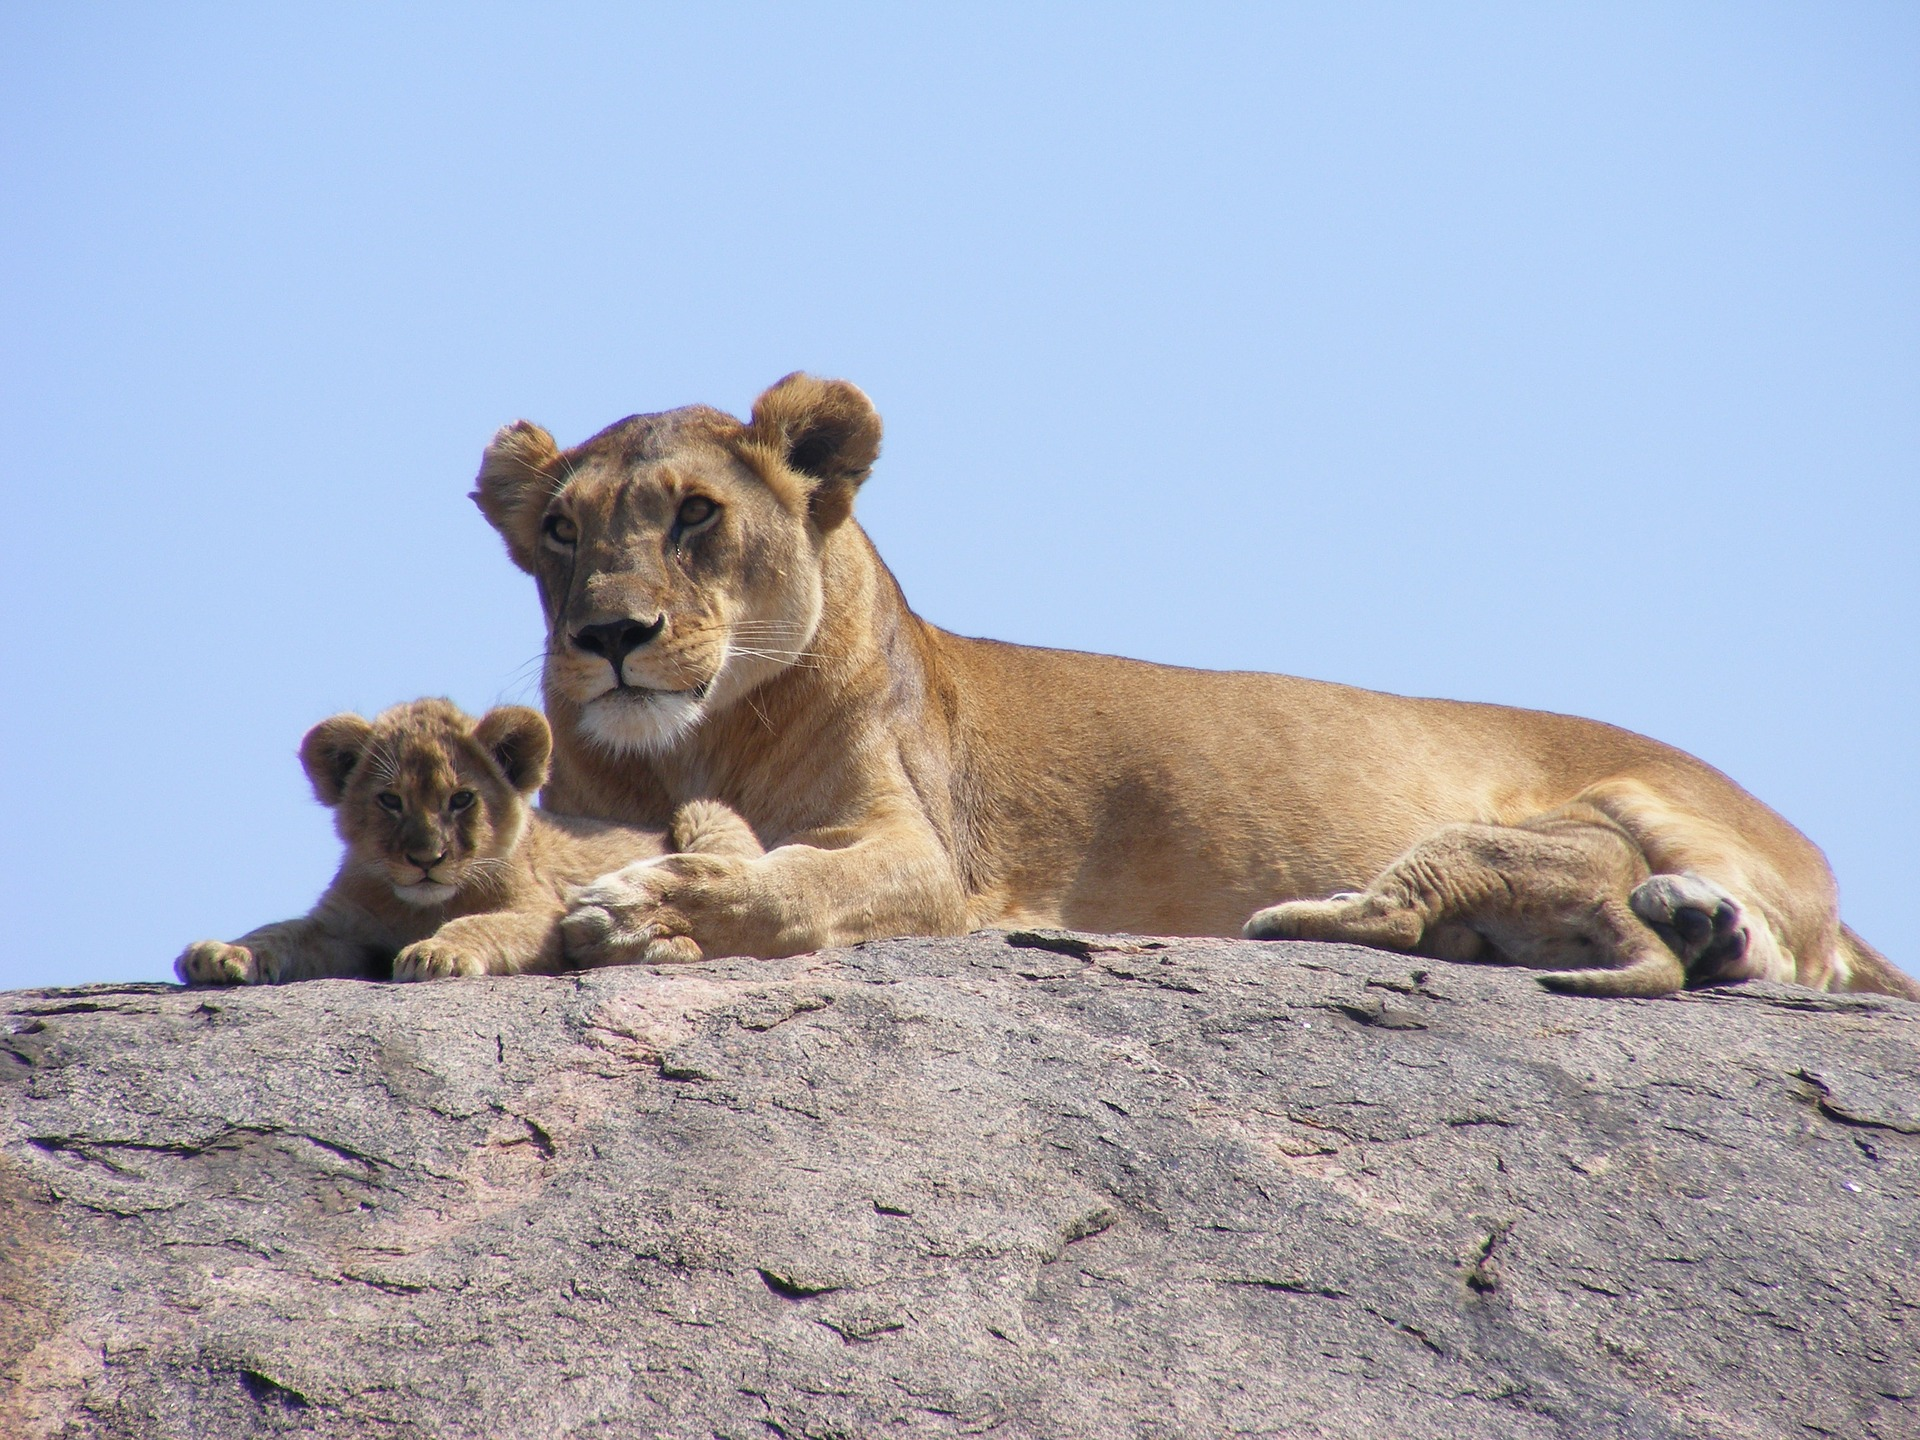 Lioness with cub. Melissa Rosenberger blog Lion of the Tribe of Judah